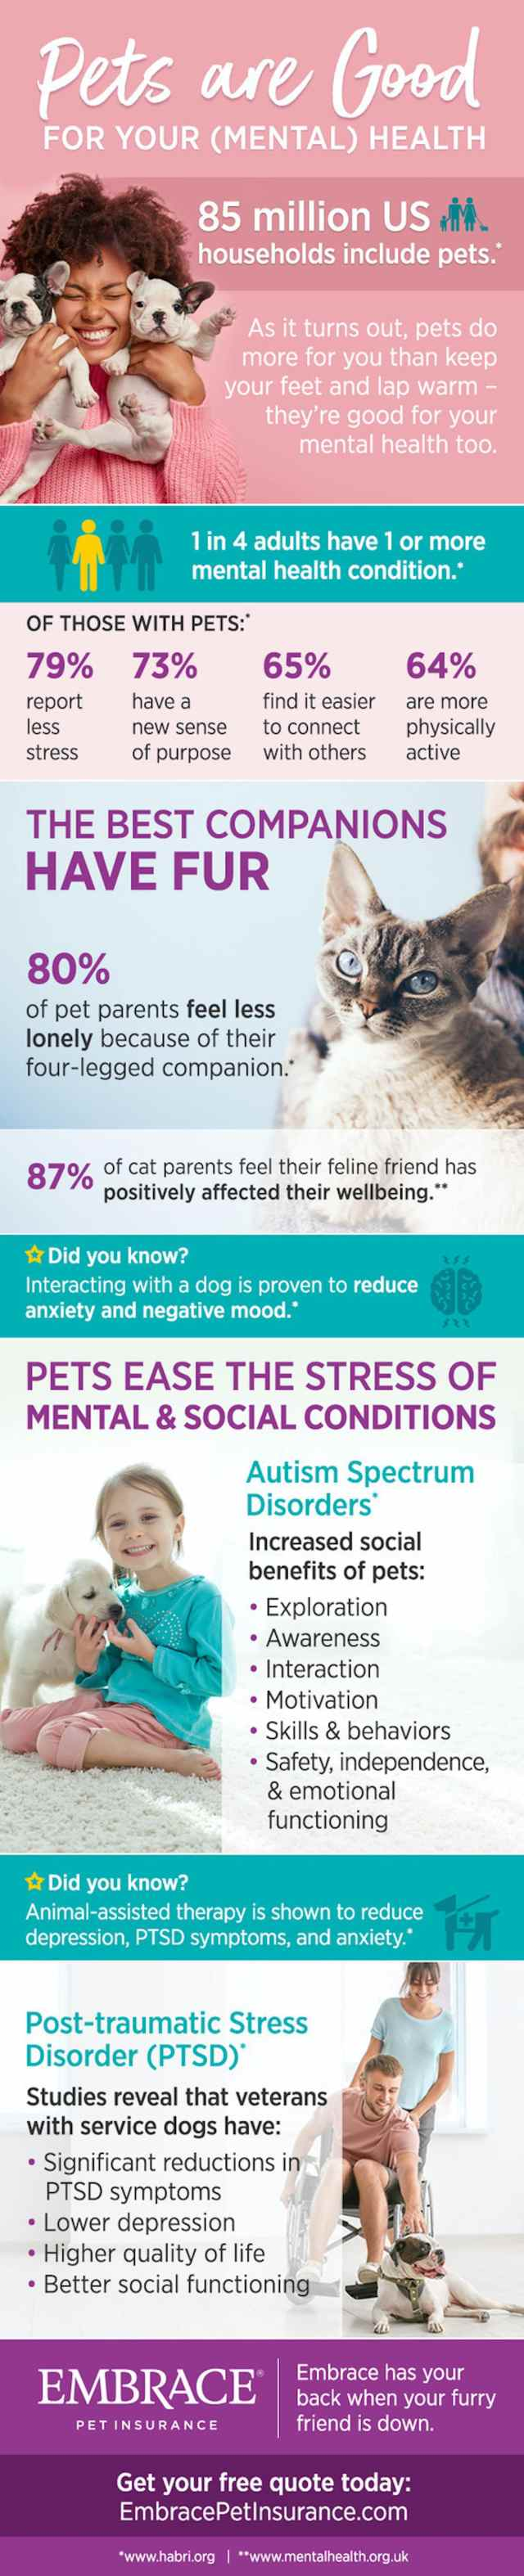 pet infographic from Embrace Pet Insurance and Habri